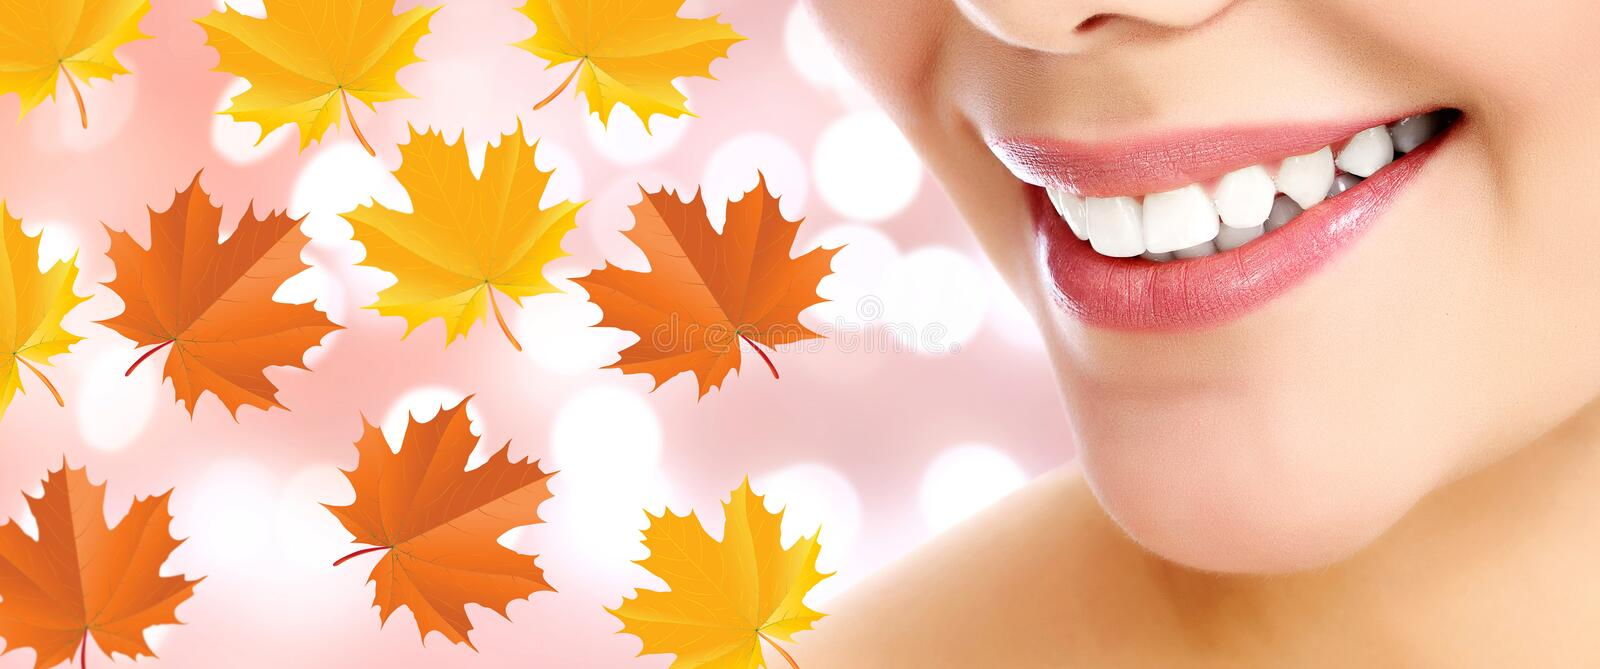 Closeup shot of female smile and maple leaves royalty free stock images